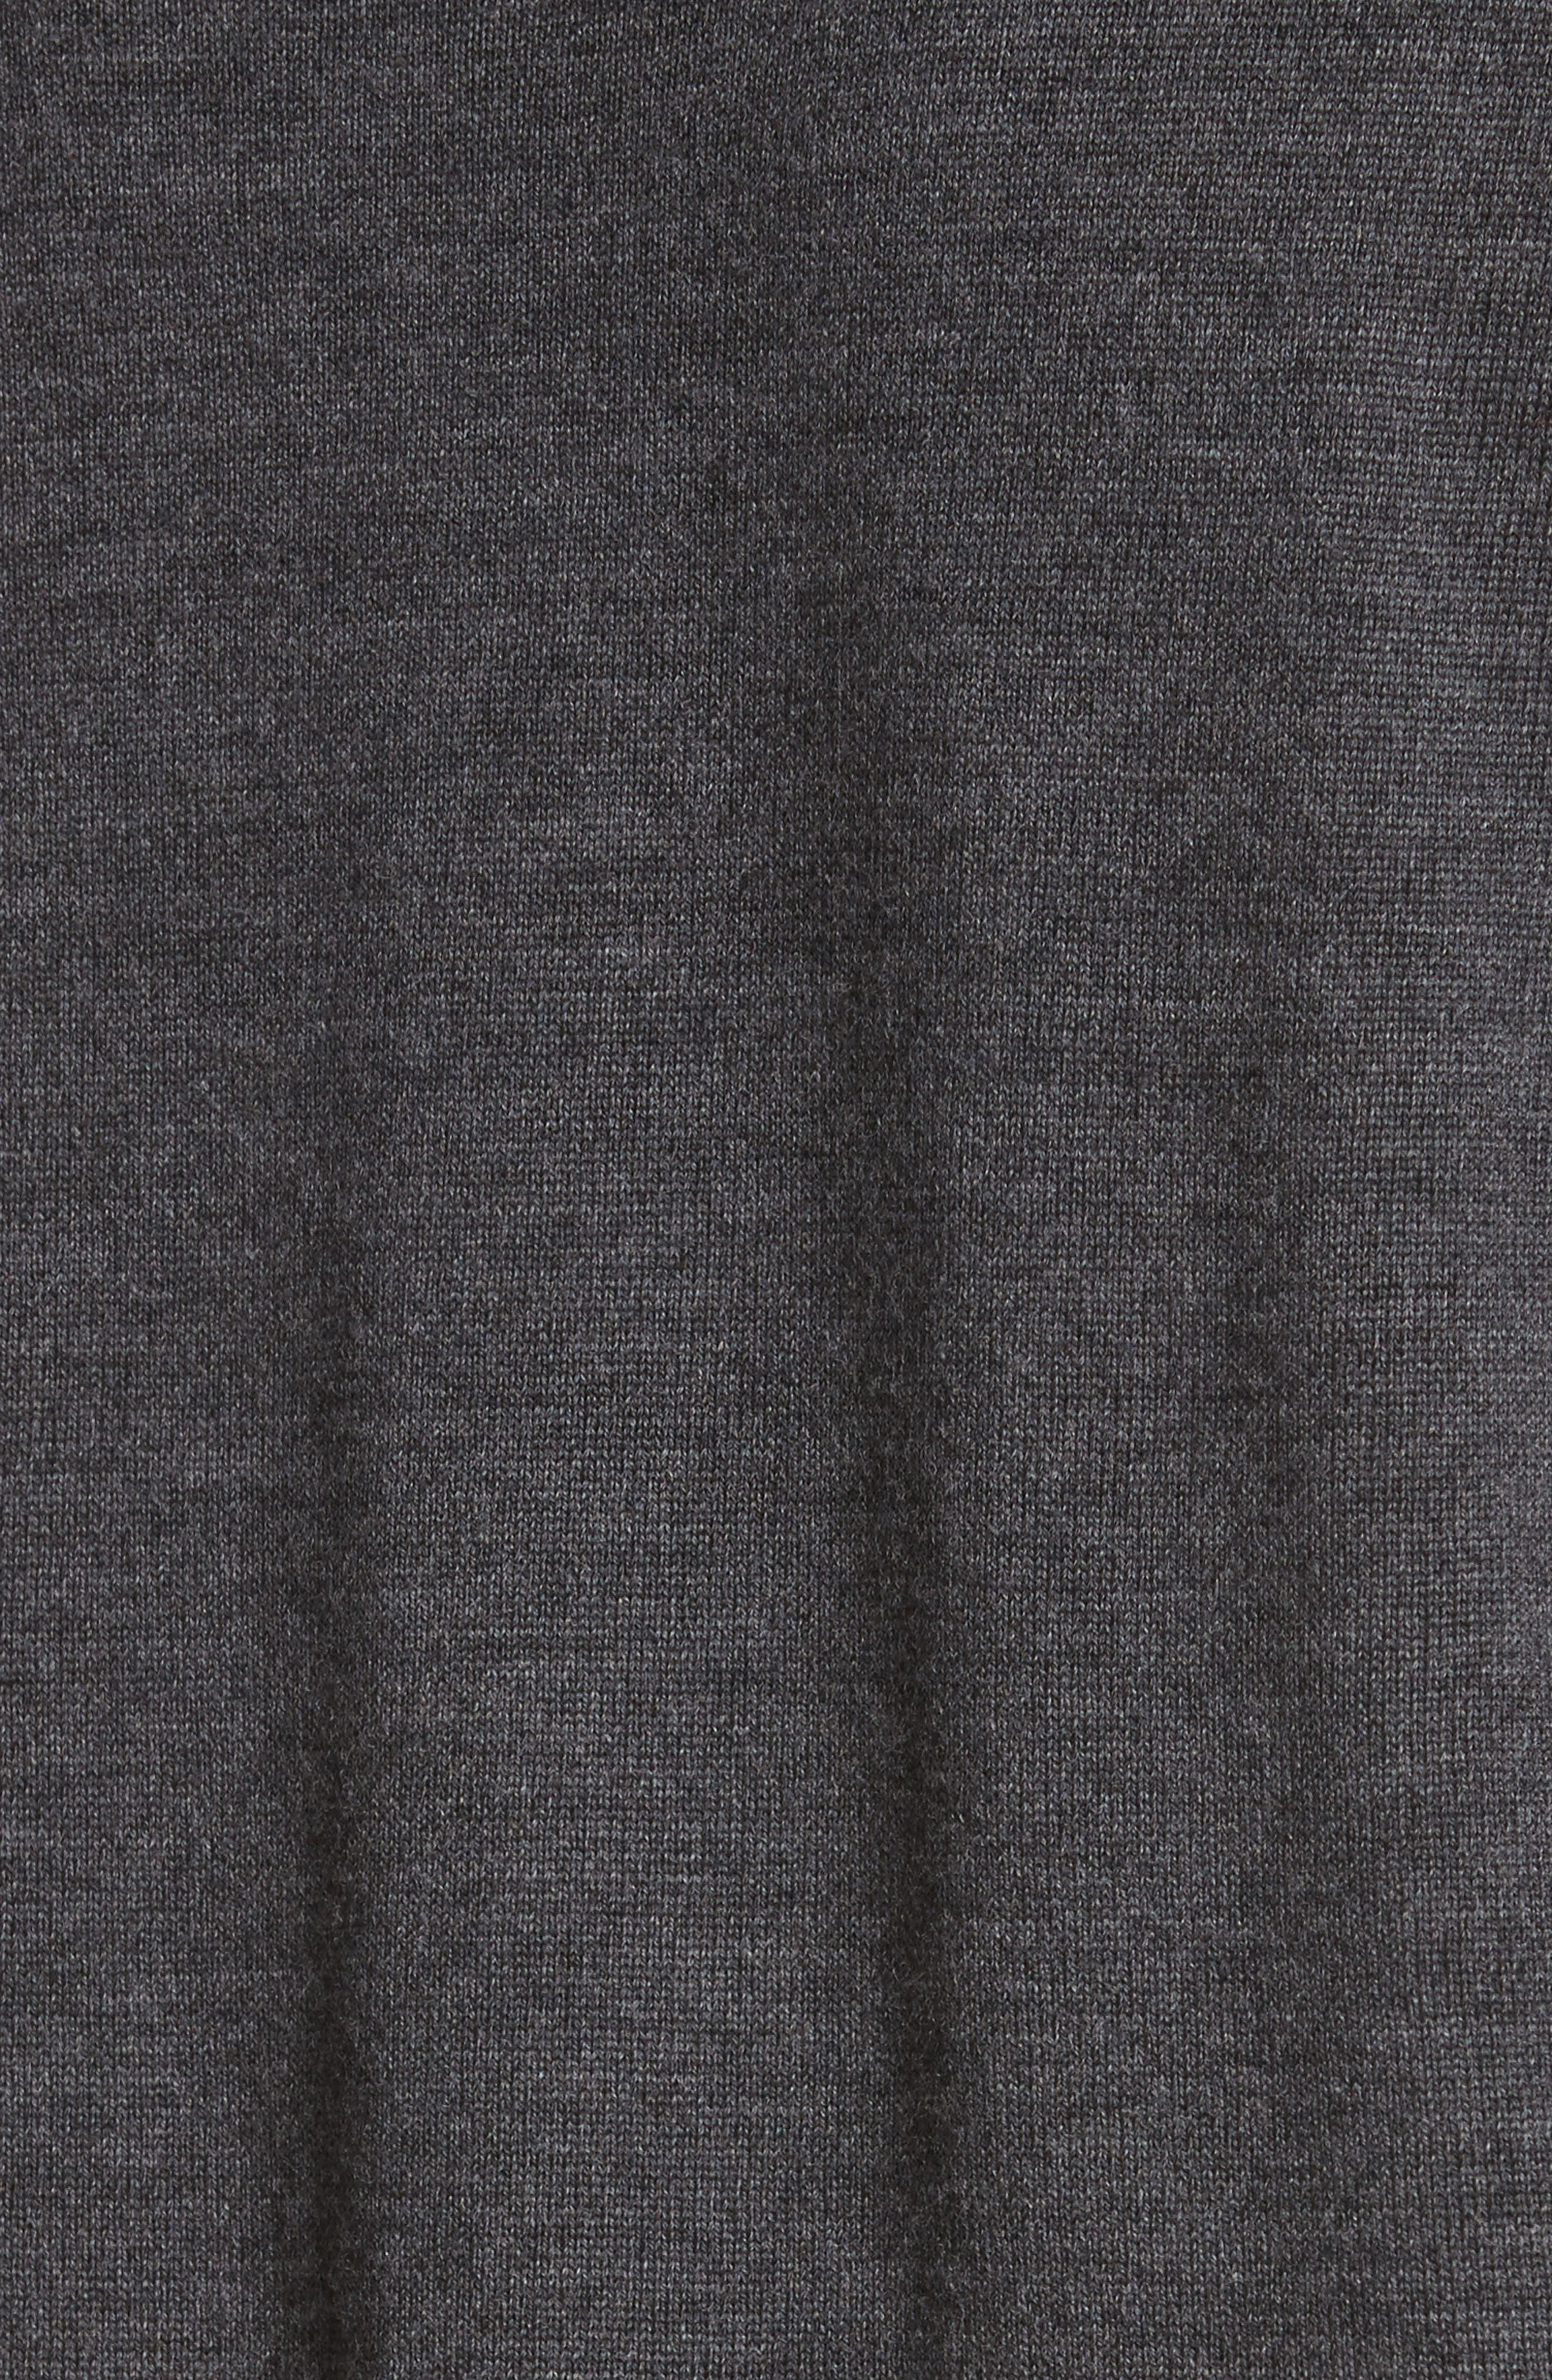 T by Alexander Wang Twisted Sleeve Wool Sweater,                             Alternate thumbnail 5, color,                             060